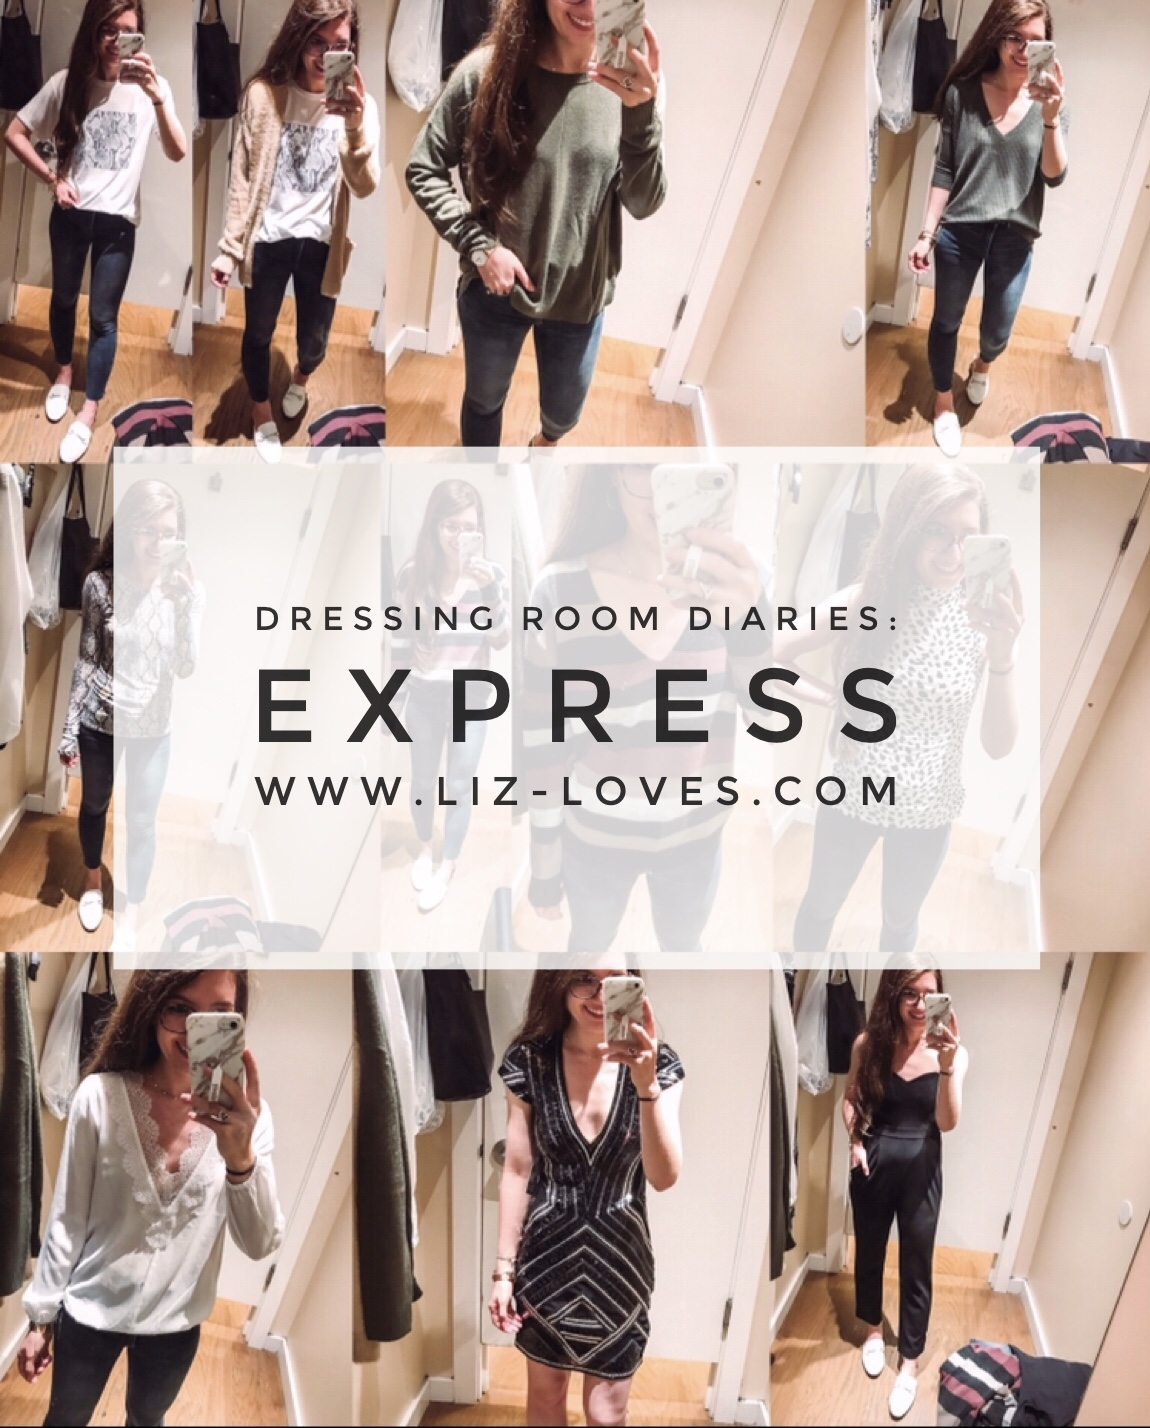 Dressing Room Diaries: Express